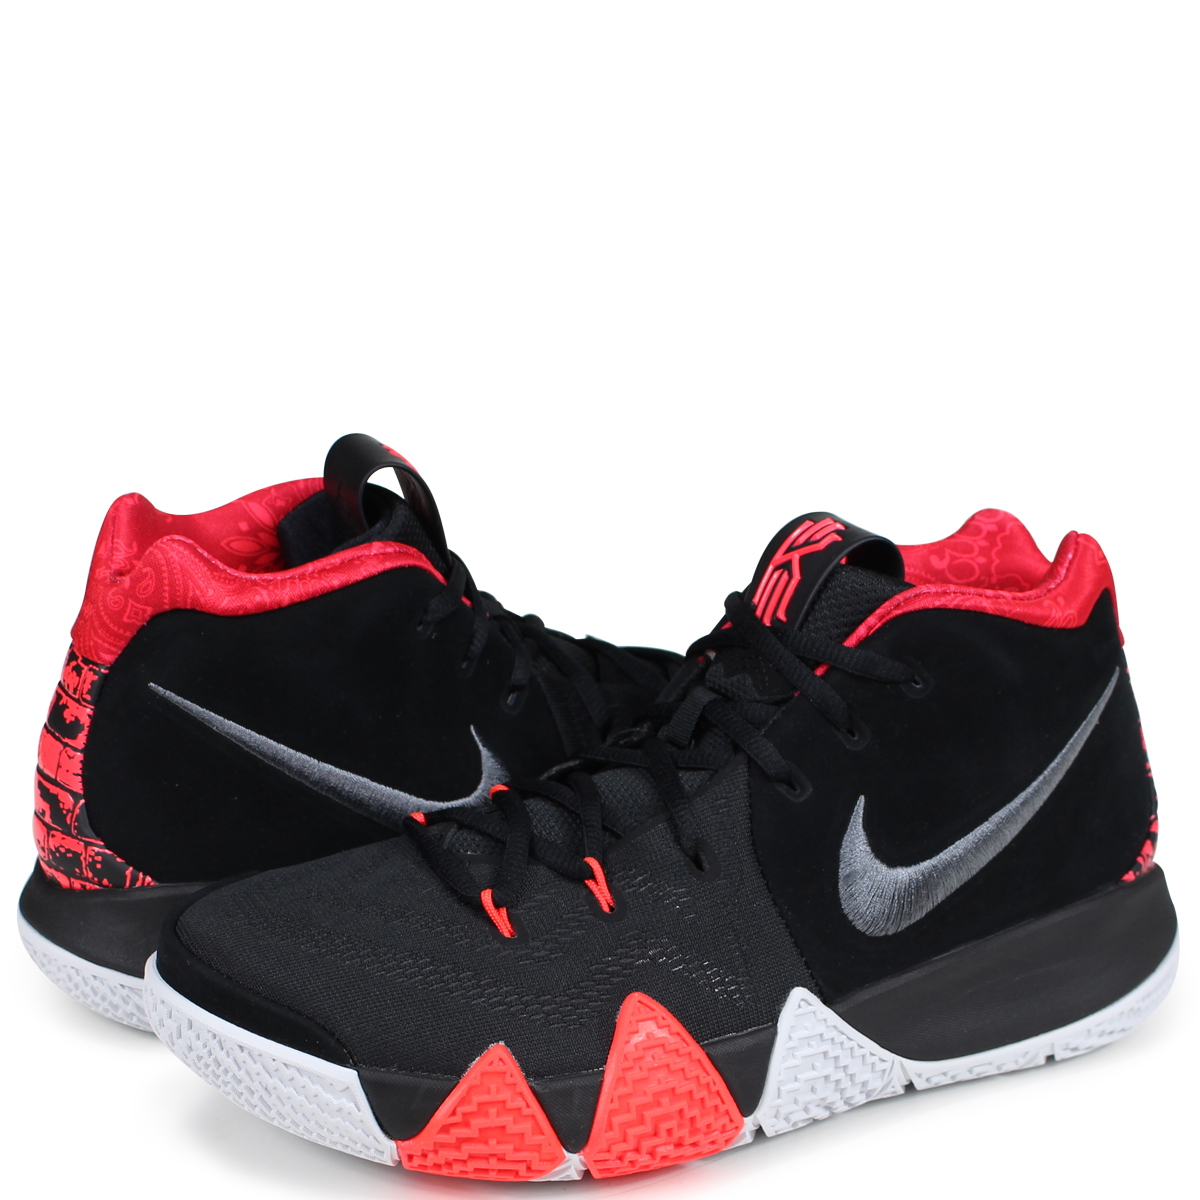 d7a61d5e1e66 ALLSPORTS  NIKE KYRIE 4 EP 41 FOR THE AGES Nike chi Lee 4 sneakers ...